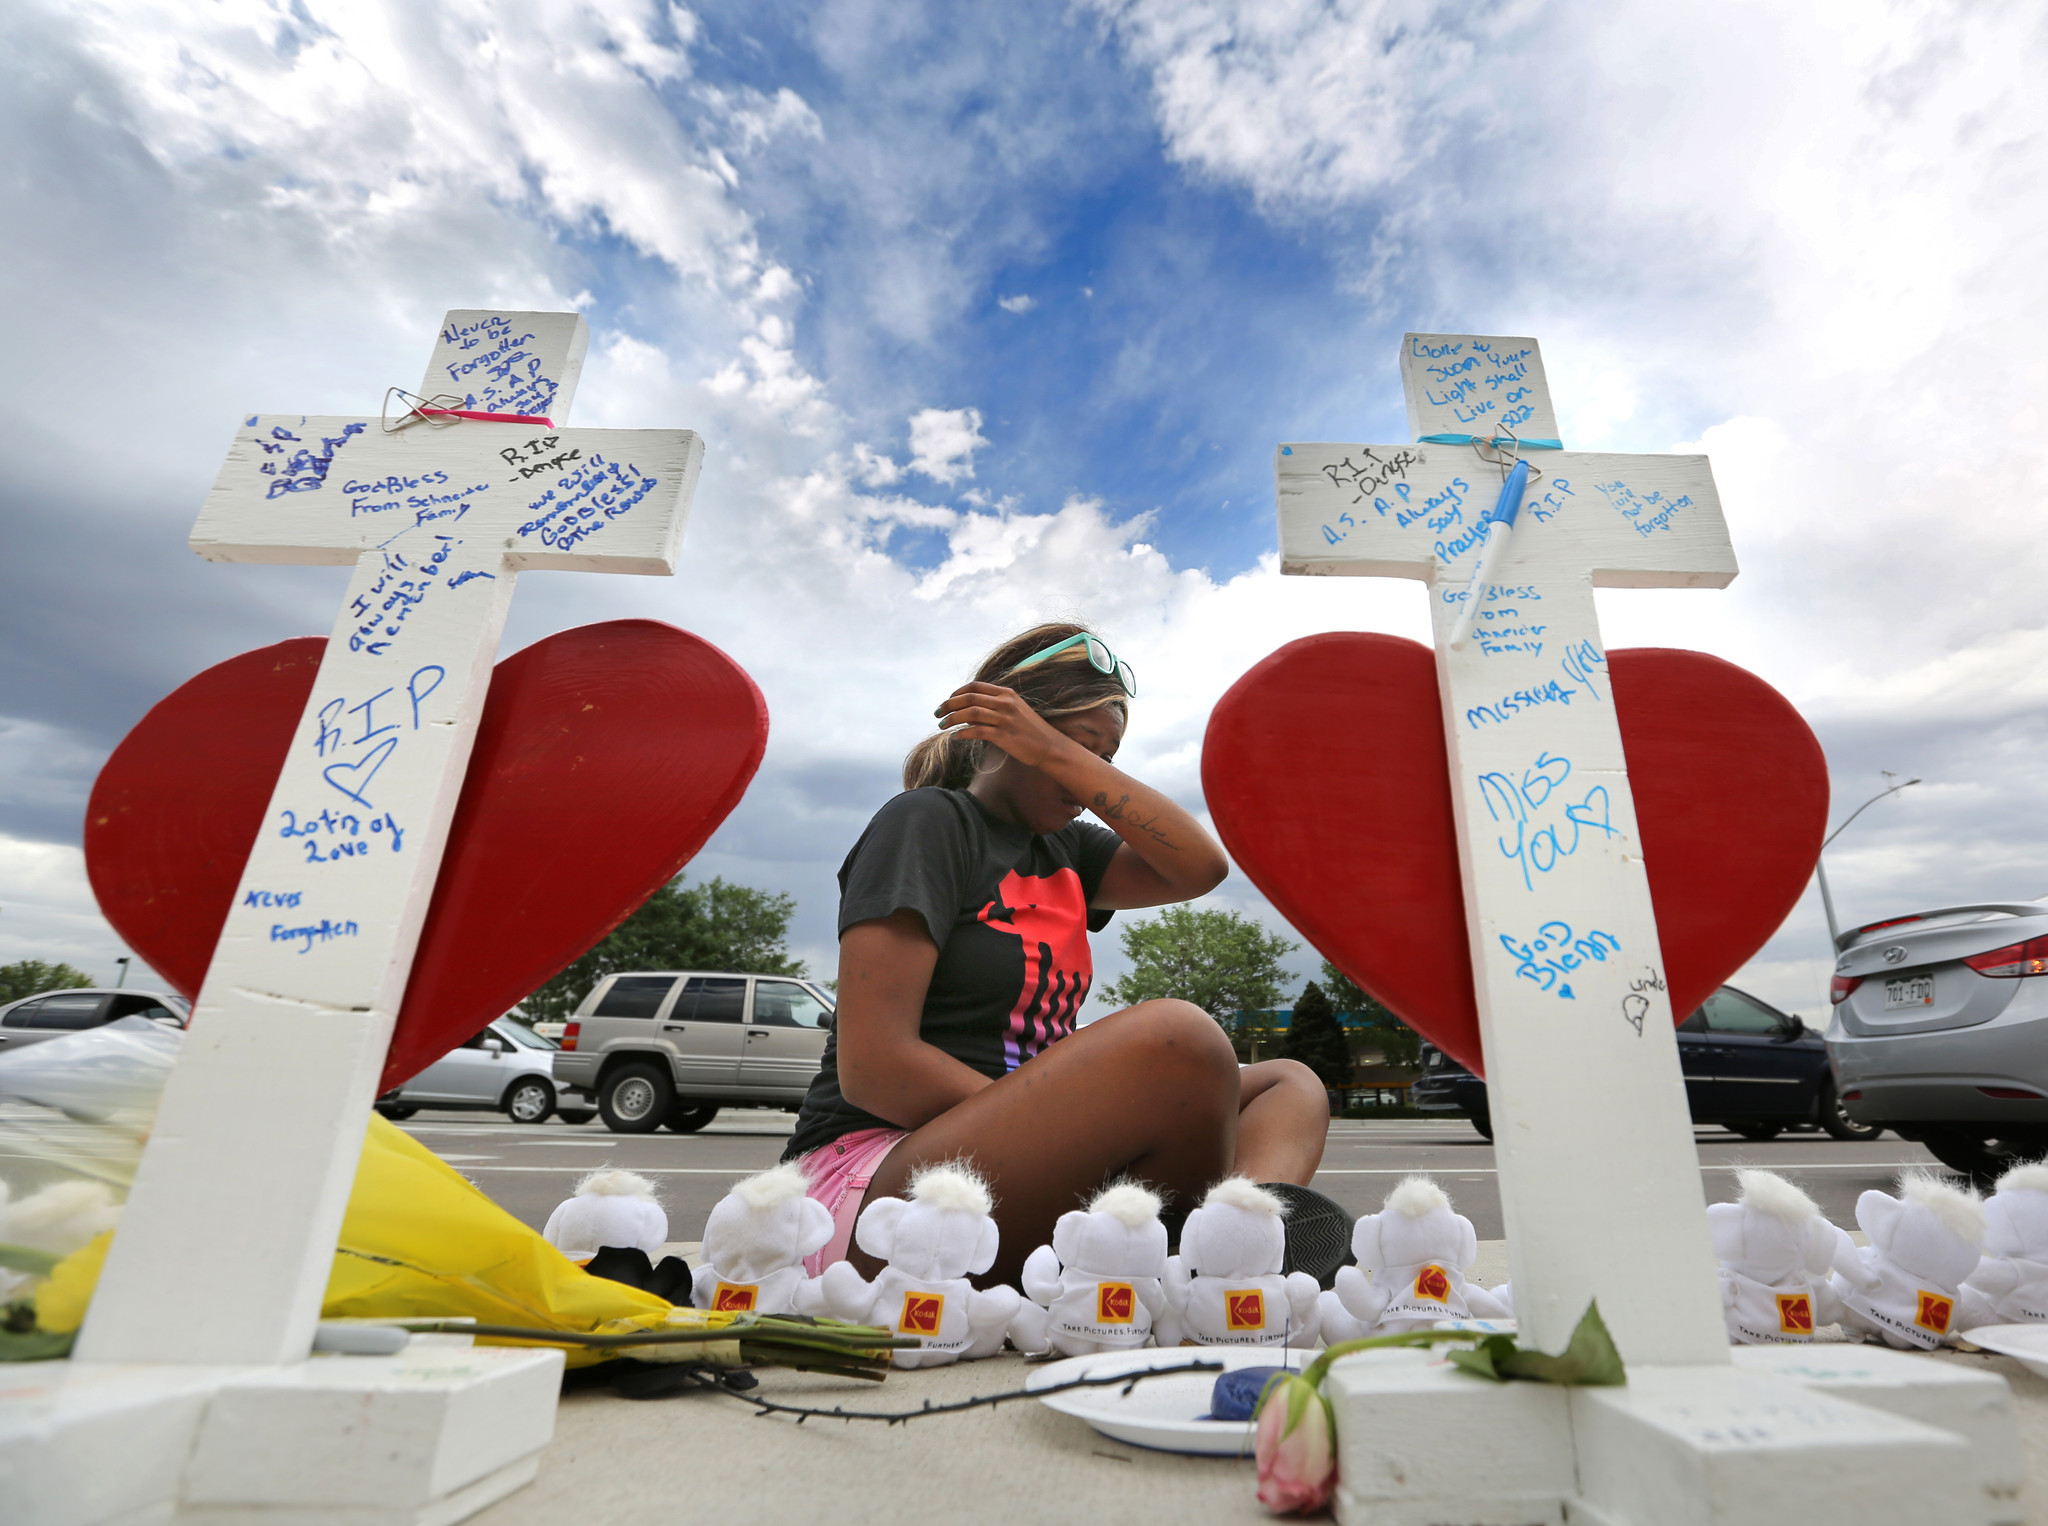 Margaret Lavin — 23, whose cousin was killed in the movie theater shooting in Aurora, Colo. — cries at a makeshift memorial of crosses marking the massacre's fourth anniversary.